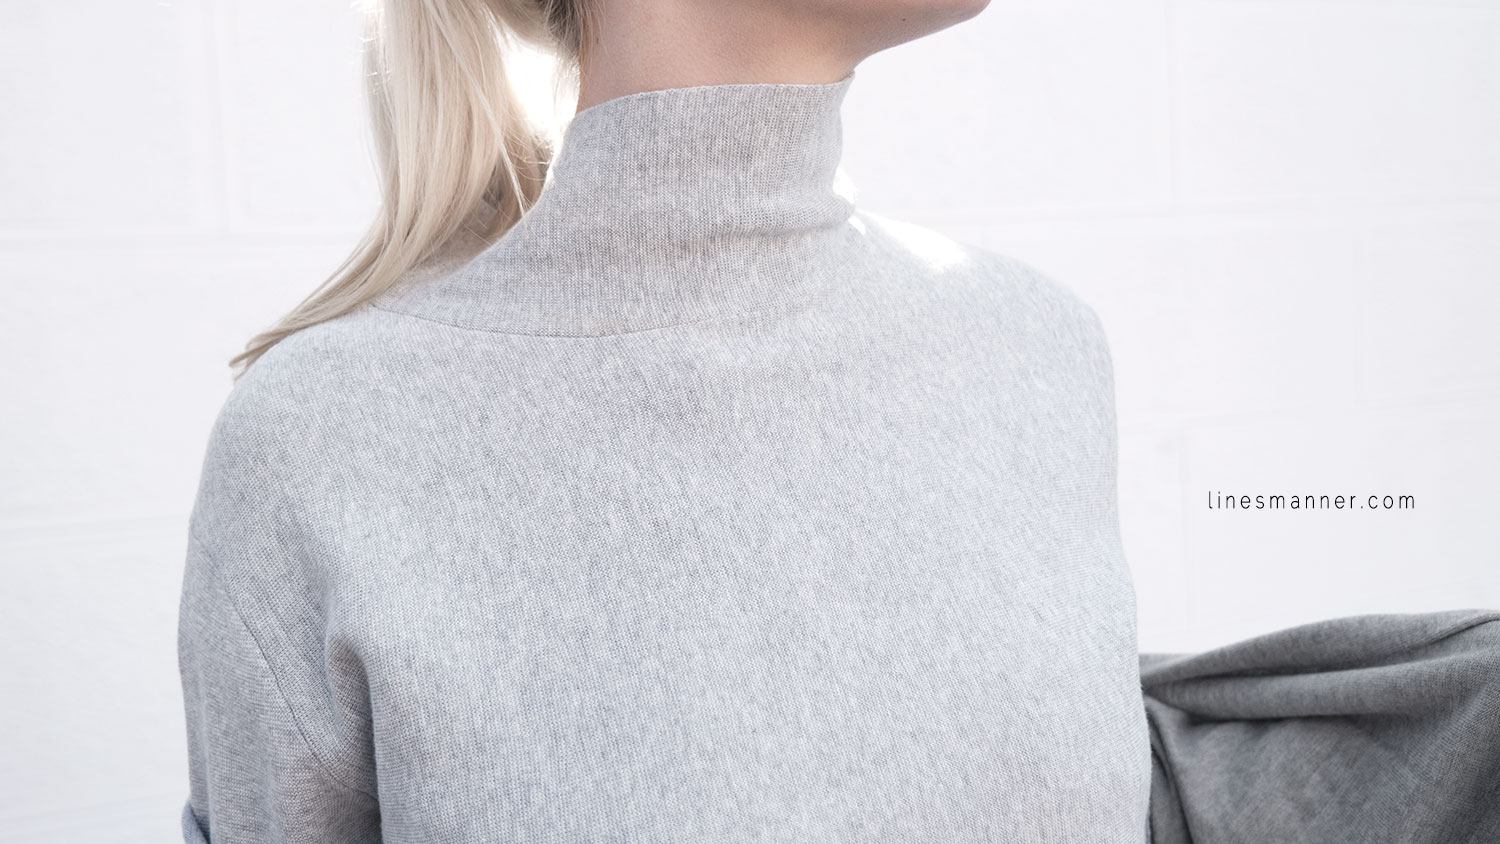 Lines-Manner-Outfit-Grey_on_grey-All_grey-Simplicty-Relaxed-Casual-Textures-Essential-Details-Staples-Minimal-Knit-Cardigan-Coisa-Layering-1